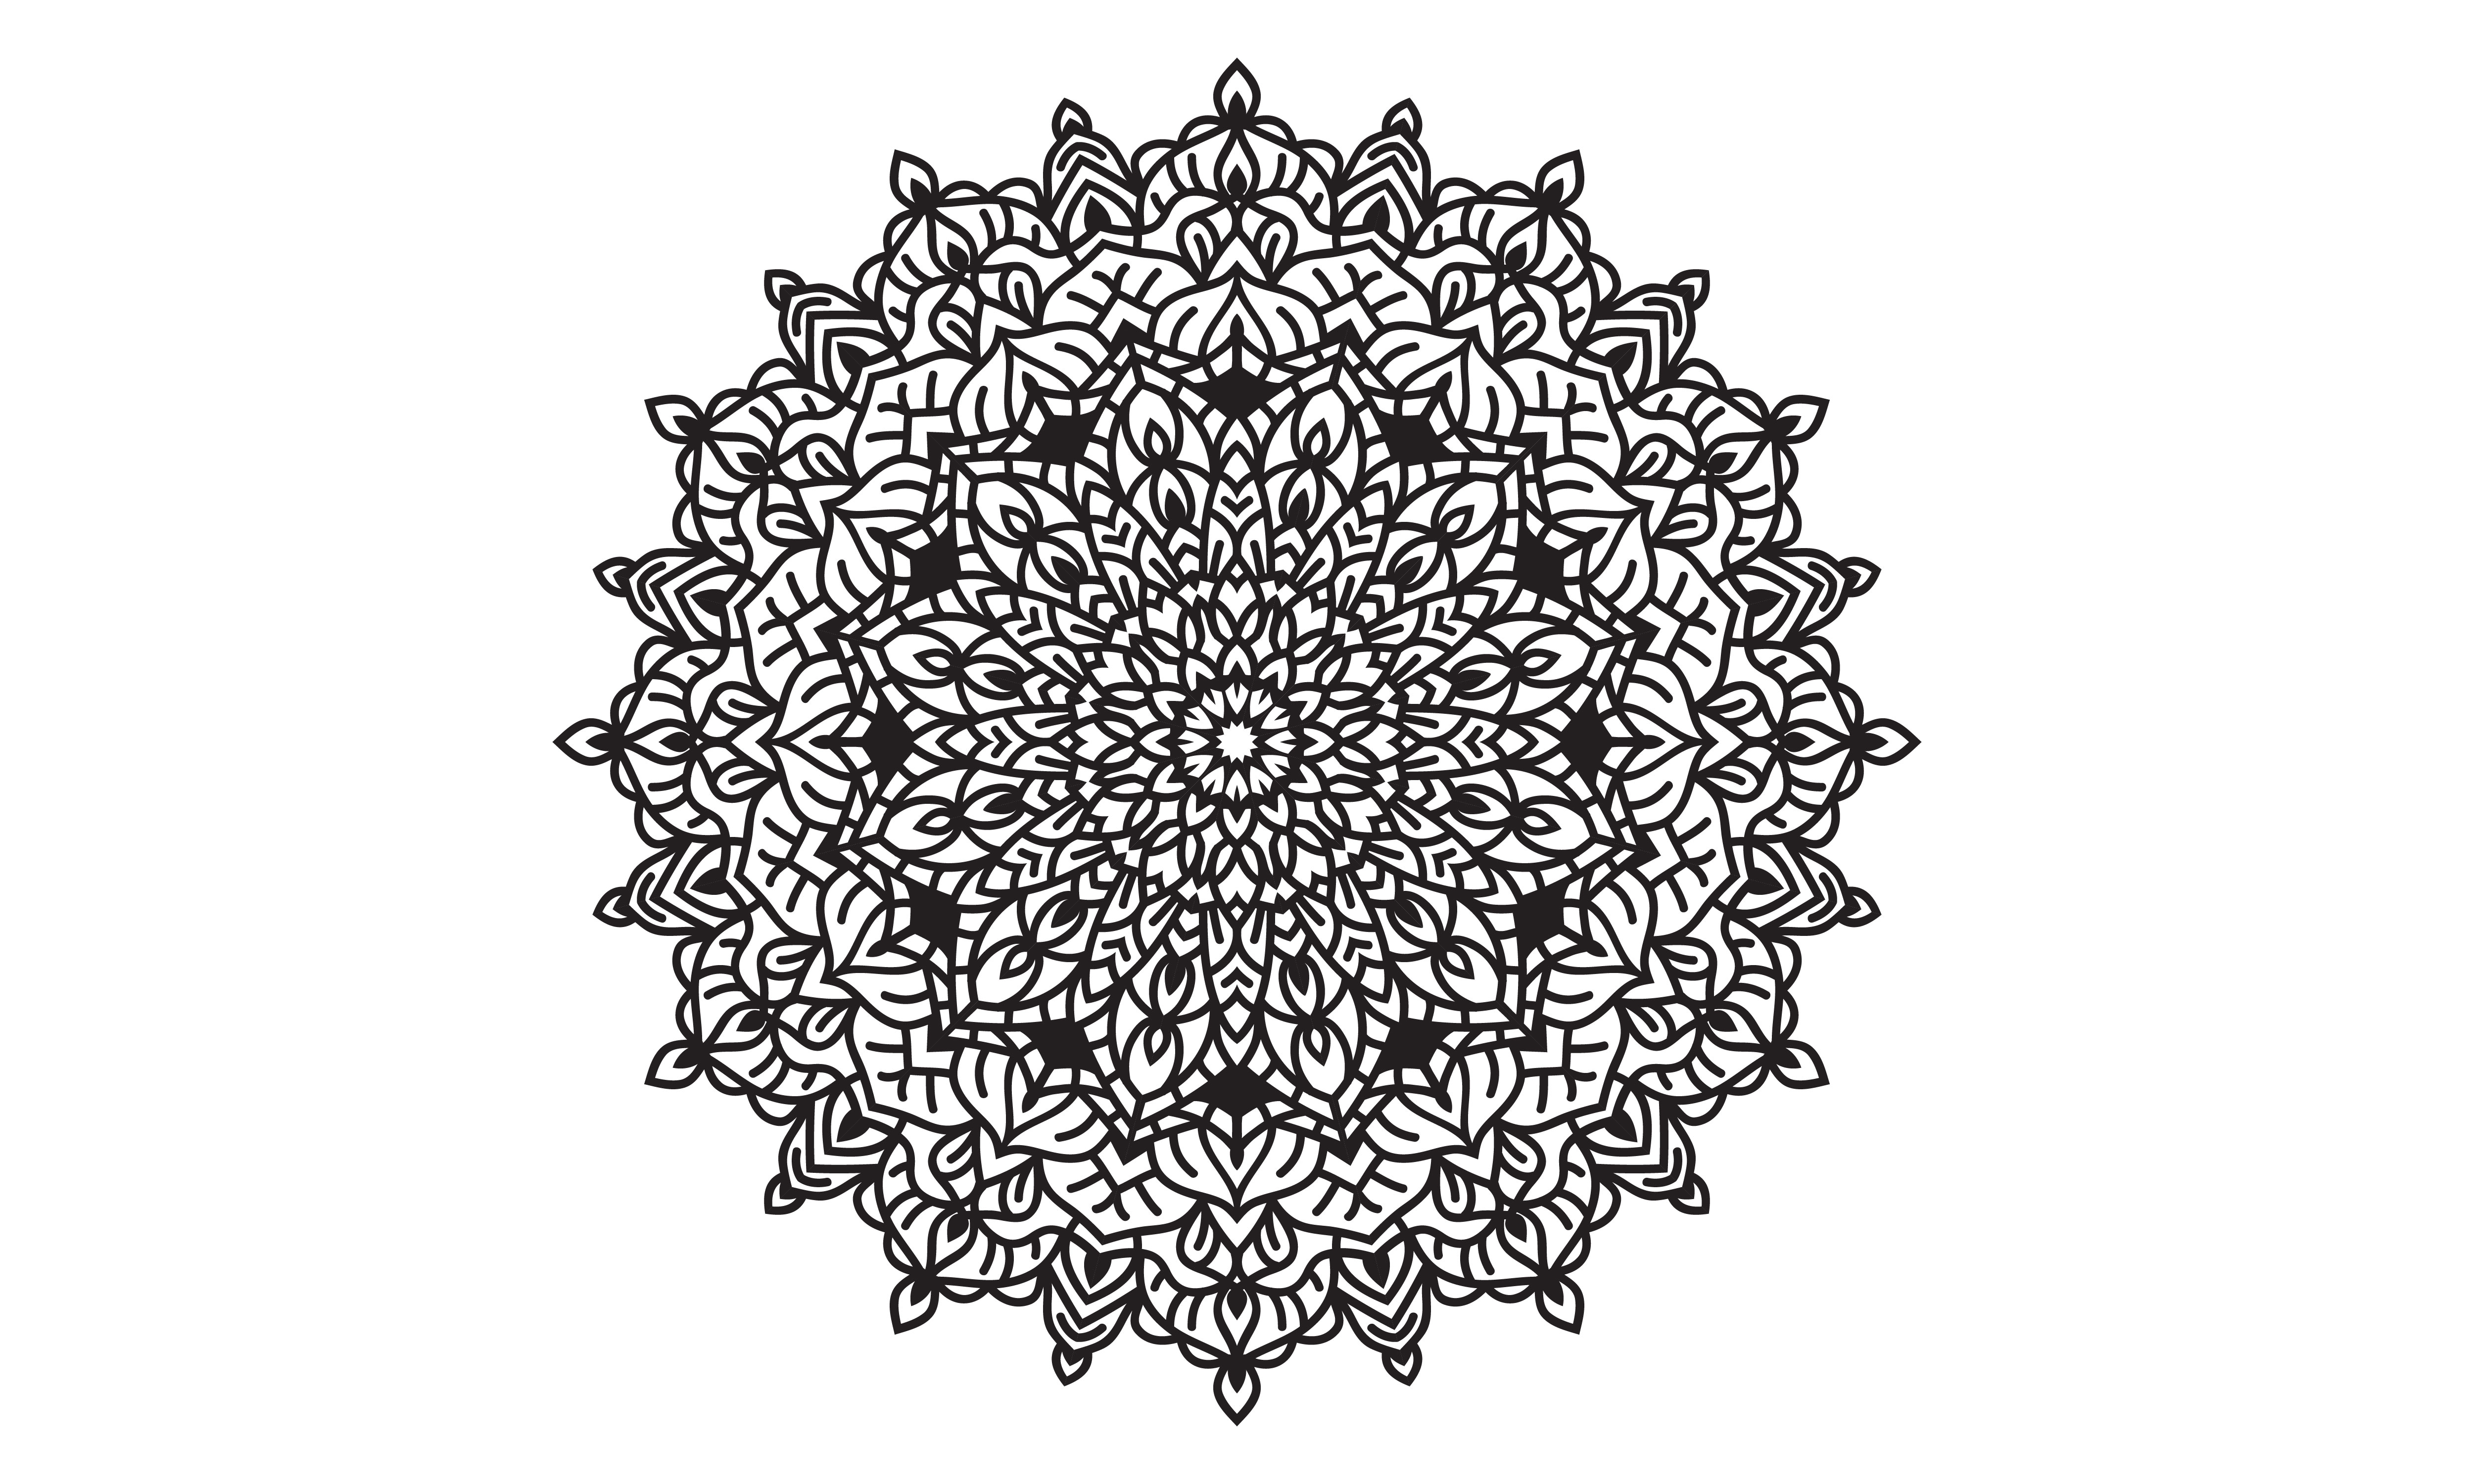 Download Free Creative Flower With Mandala Style Graphic By Be Young for Cricut Explore, Silhouette and other cutting machines.